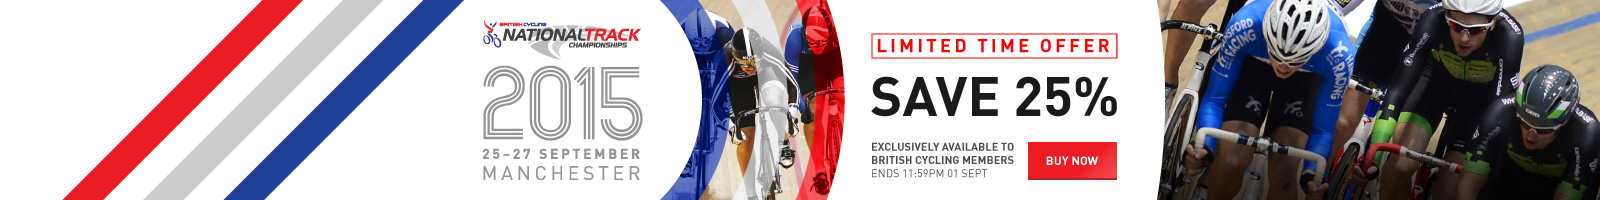 British Cycling National Track Championships 2015 Tickets